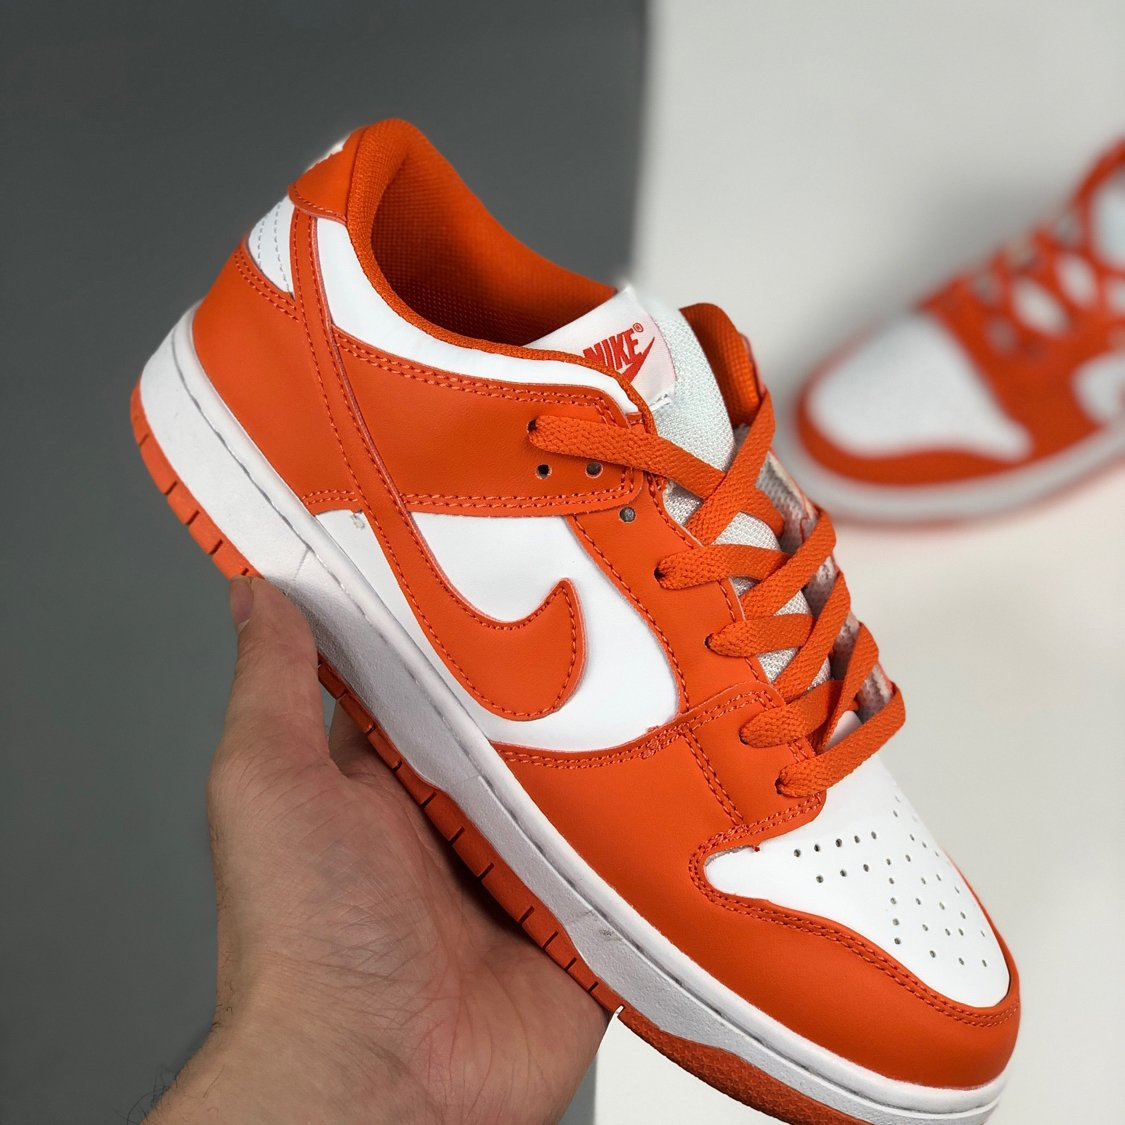 Image of Nike SB Dunk Low Pro Simple Casual Skateboard Shoes Sneakers